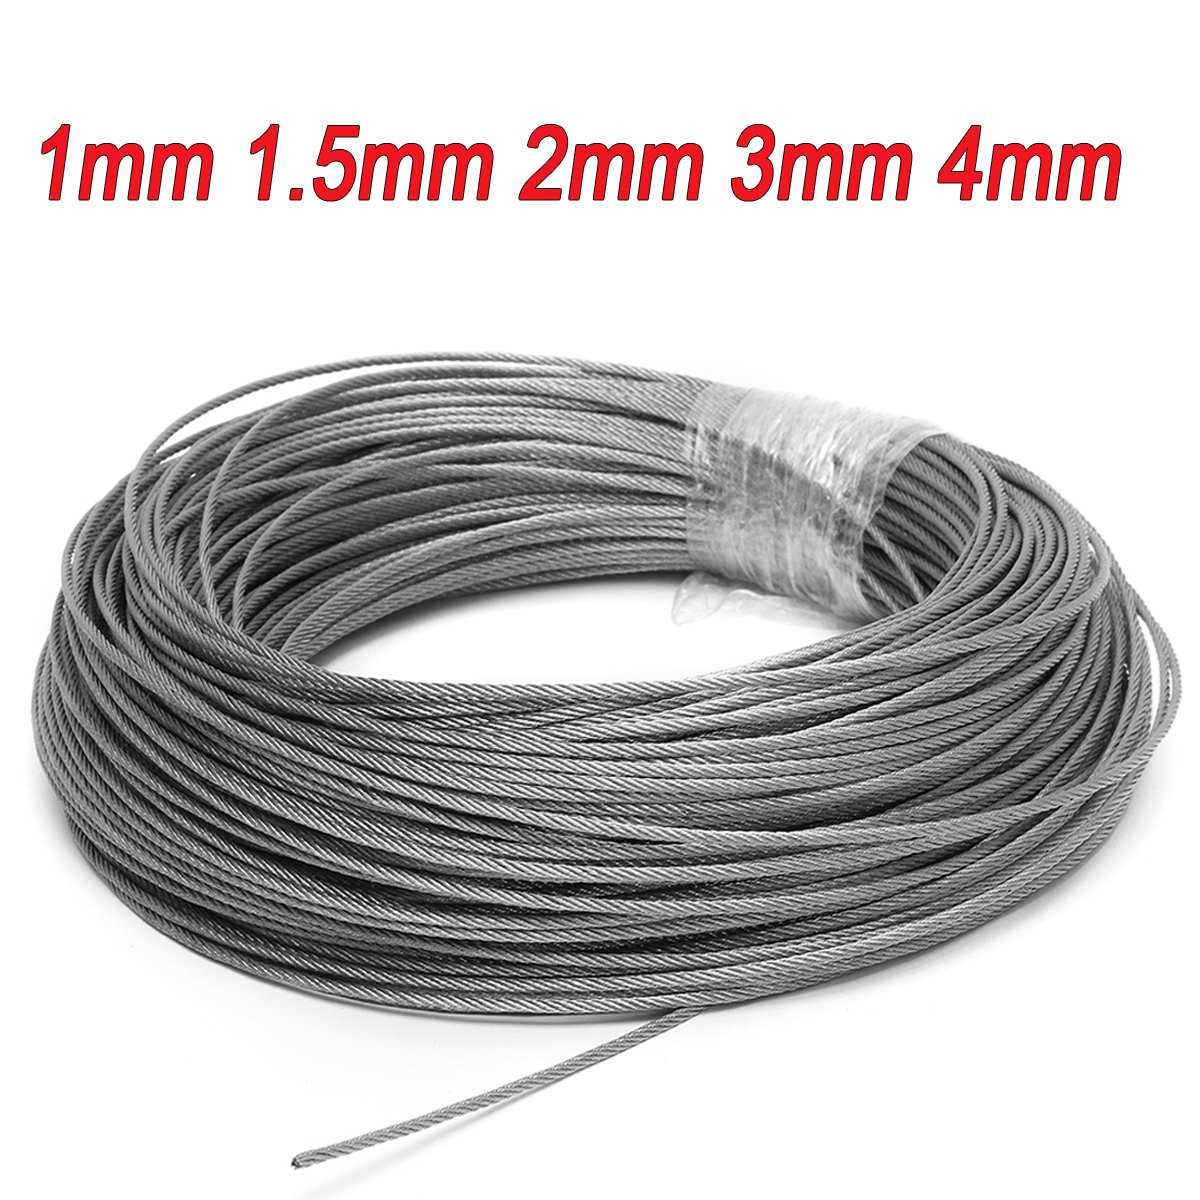 50M/100M 1mm 1.5mm 2mm Diameter 304 Stainless Steel Wire Rope Fishing Lifting Cable Line Clothesline 7X7 Structure 1/1.5/2mm